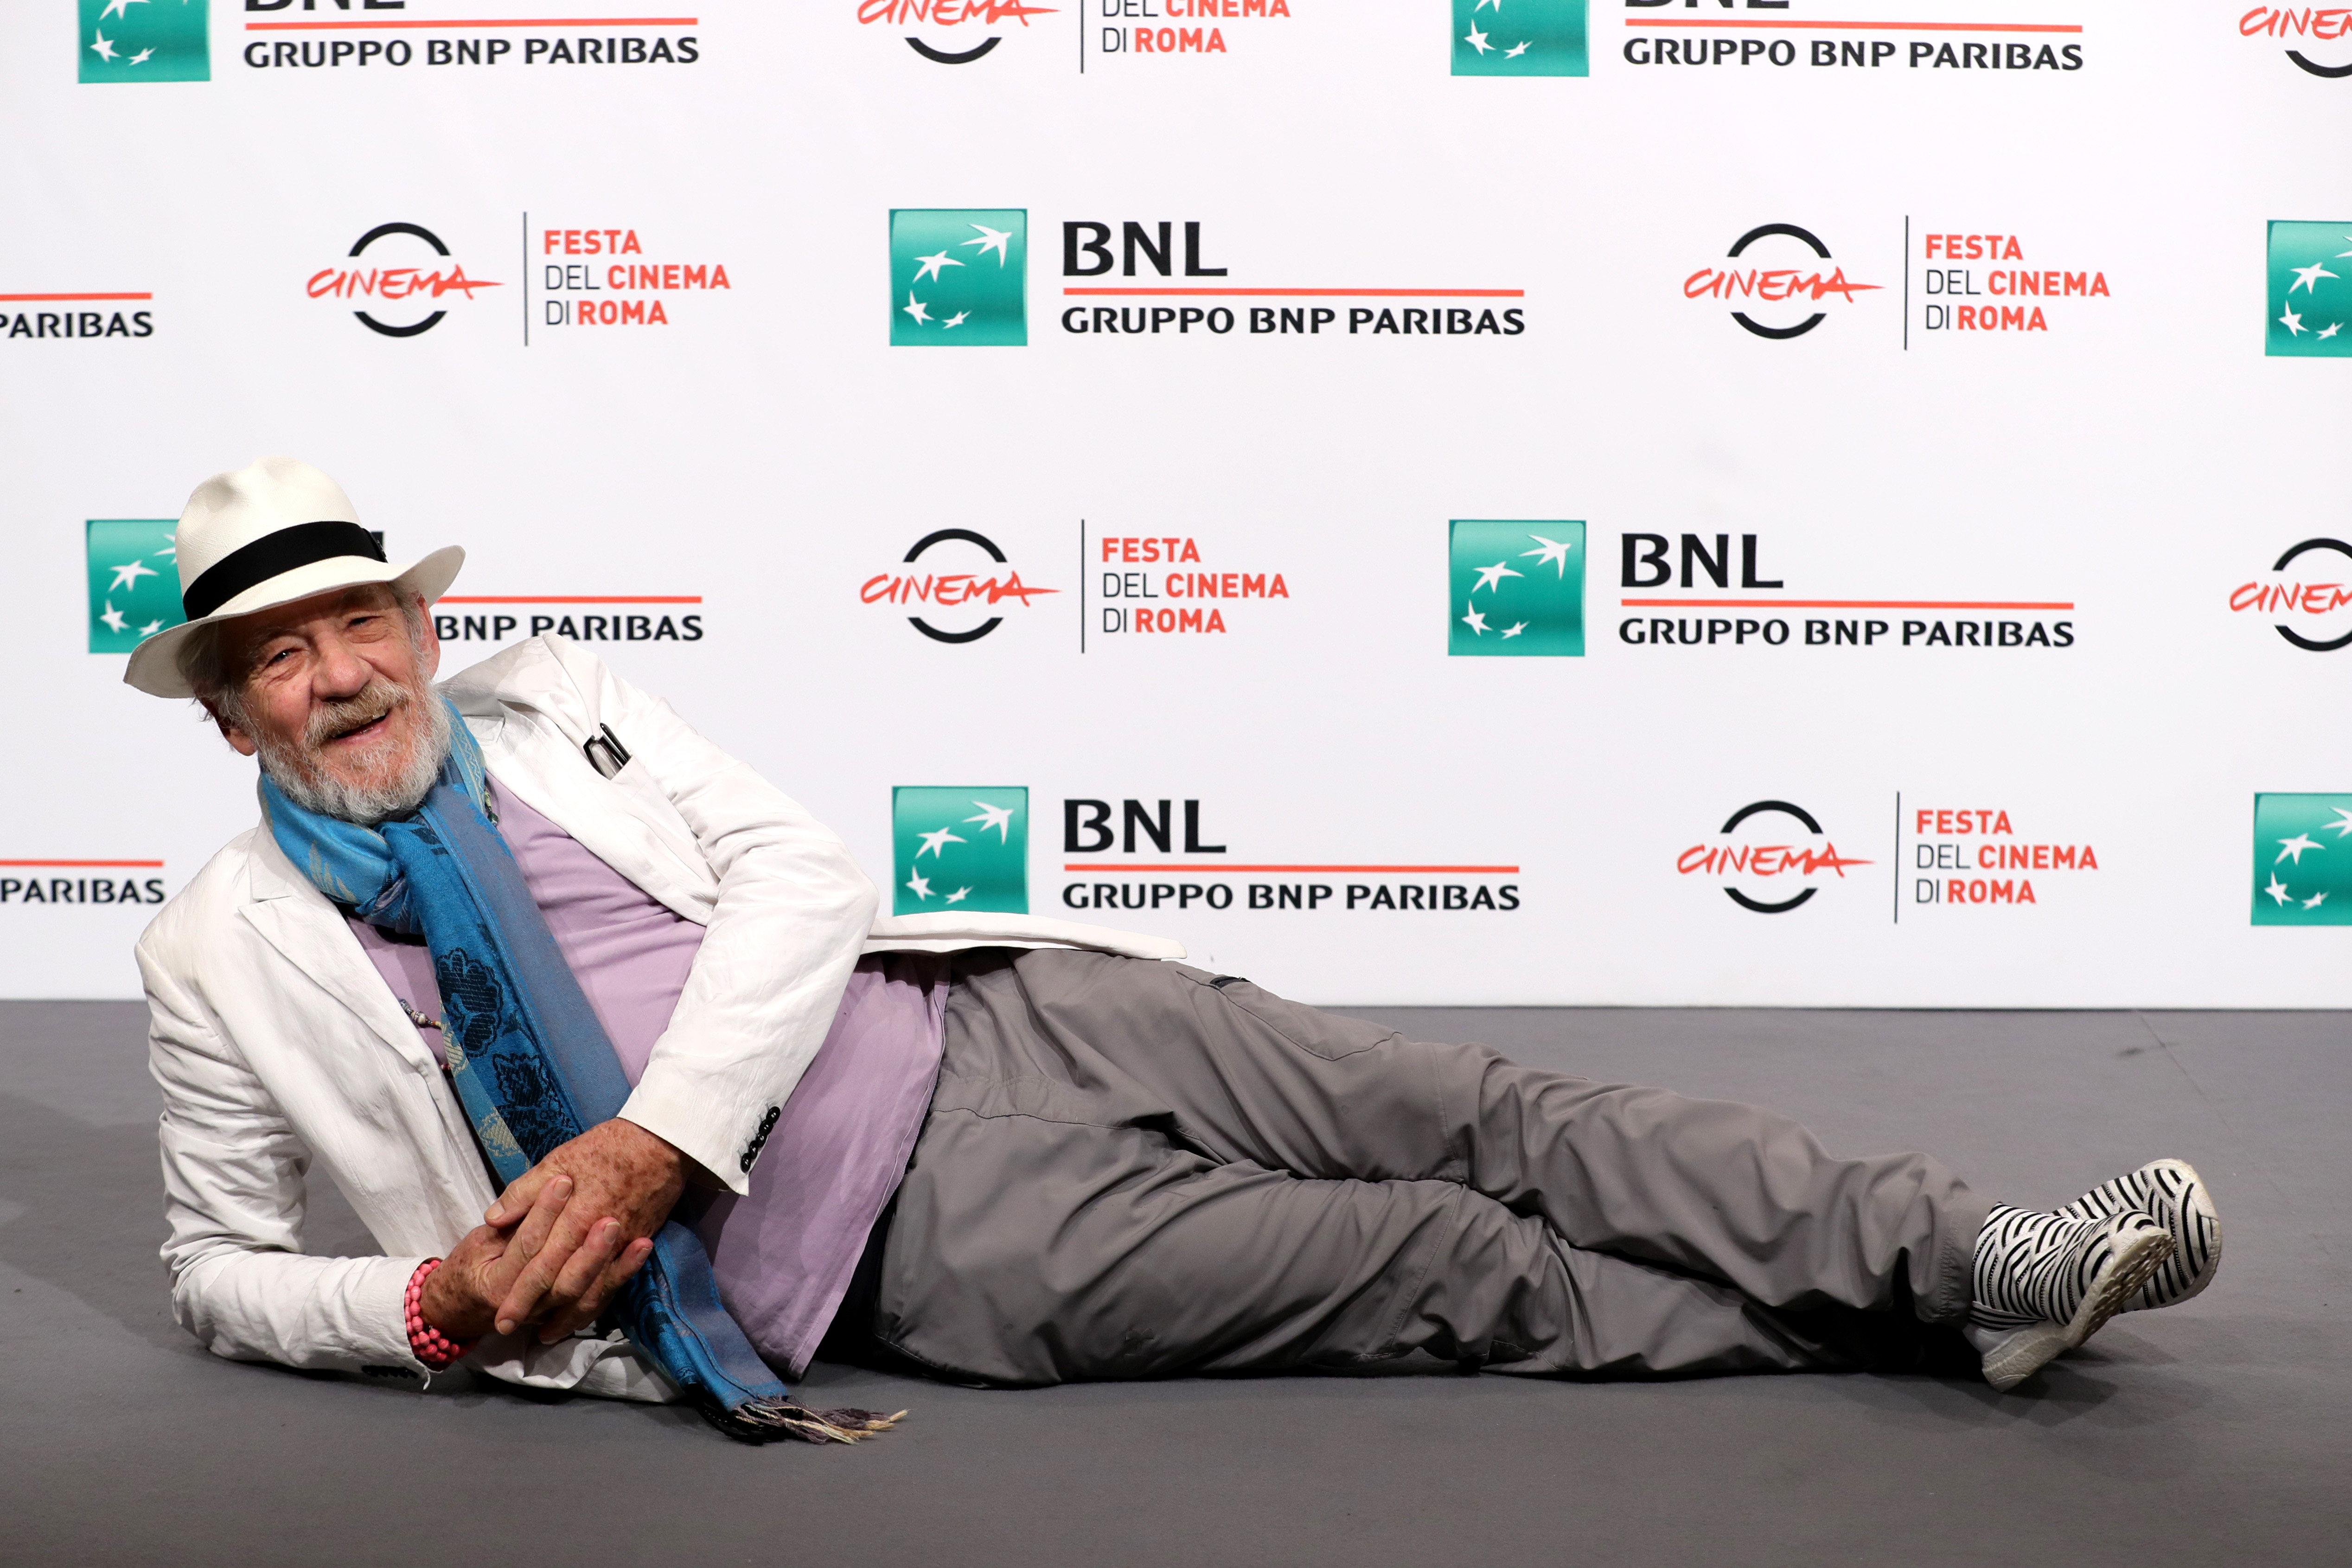 Ian McKellen attends a photocall during the 12th Rome Film Fest at Auditorium Parco Della Musica on November 1, 2017 in Rome, Italy.